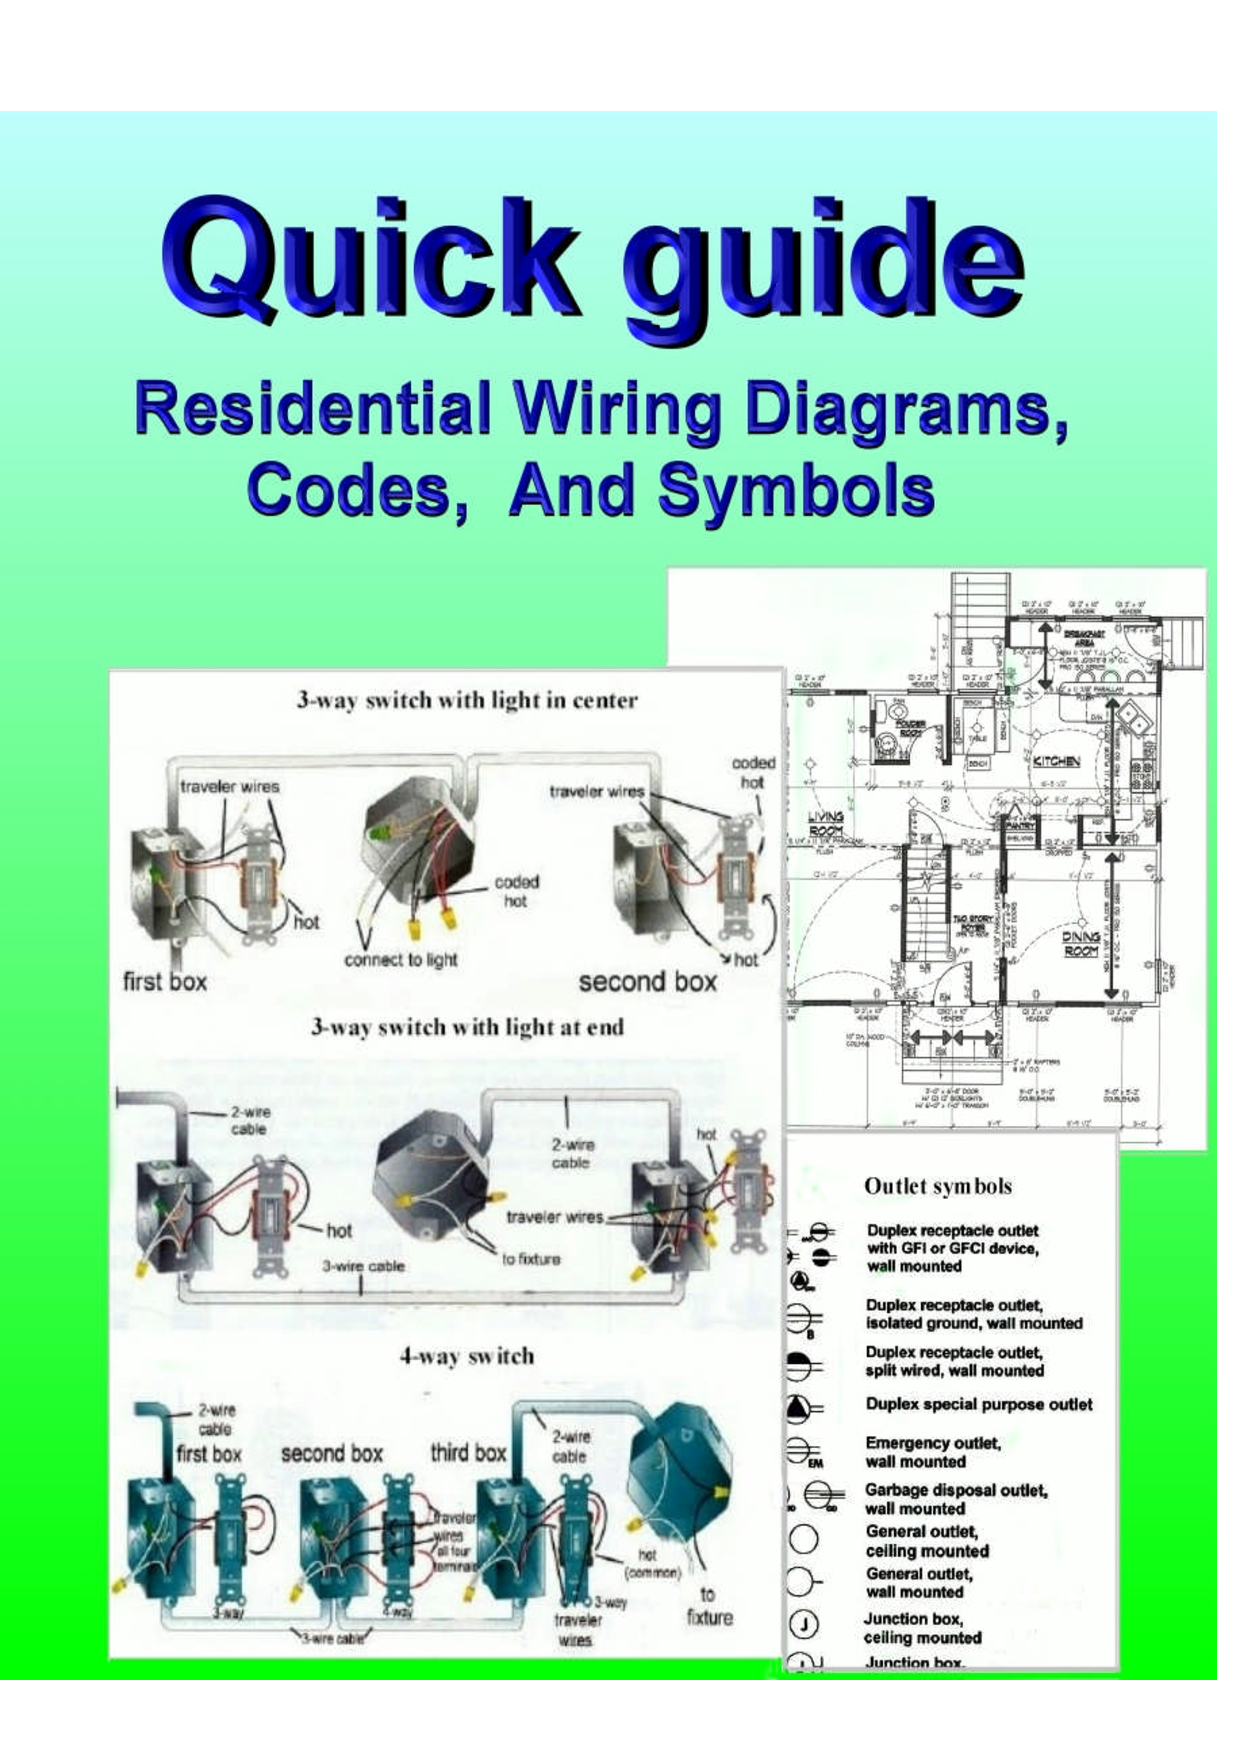 new home wiring guide #diagram #wiringdiagram #diagramming #diagramm  #visuals #visualisation #g… | home electrical wiring, residential electrical,  electrical wiring  pinterest